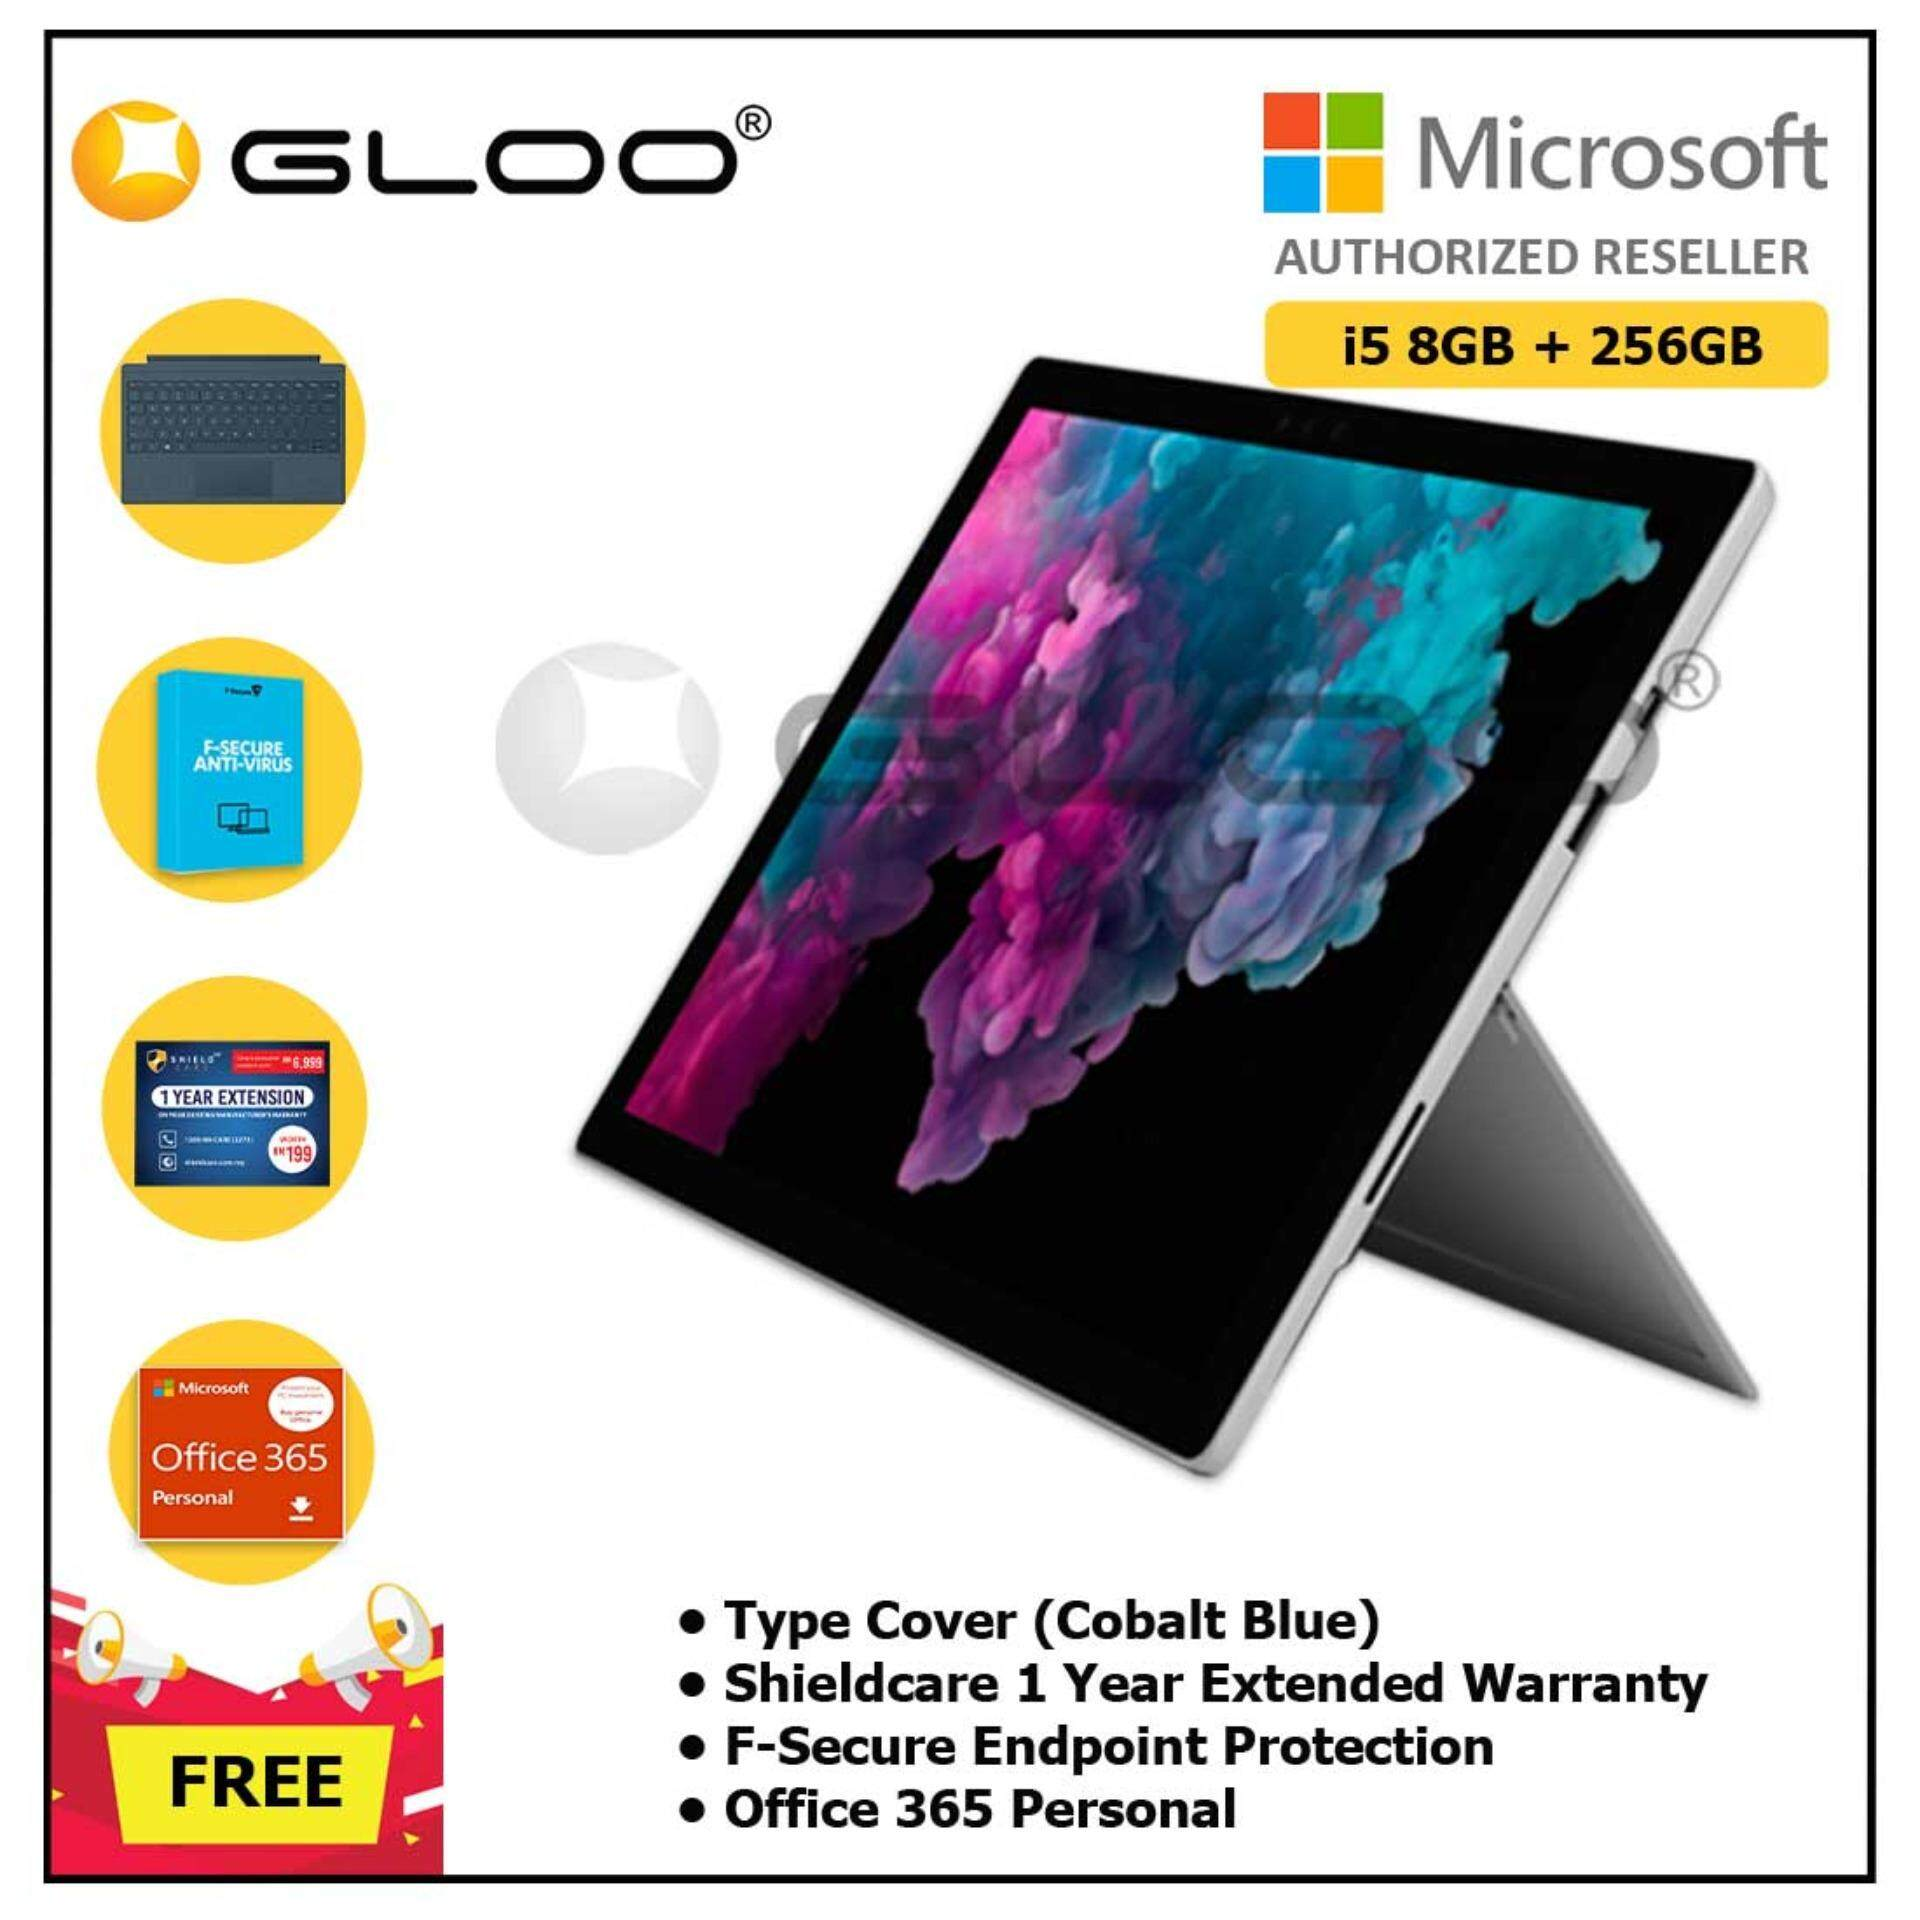 NEW Microsoft Surface Pro 6 Core i5/8GB RAM - 256GB + Type Cover Cobalt Blue + Shieldcare 1 Year Extended Warranty + F-Secure Endpoint Protection + Office 365 Personal